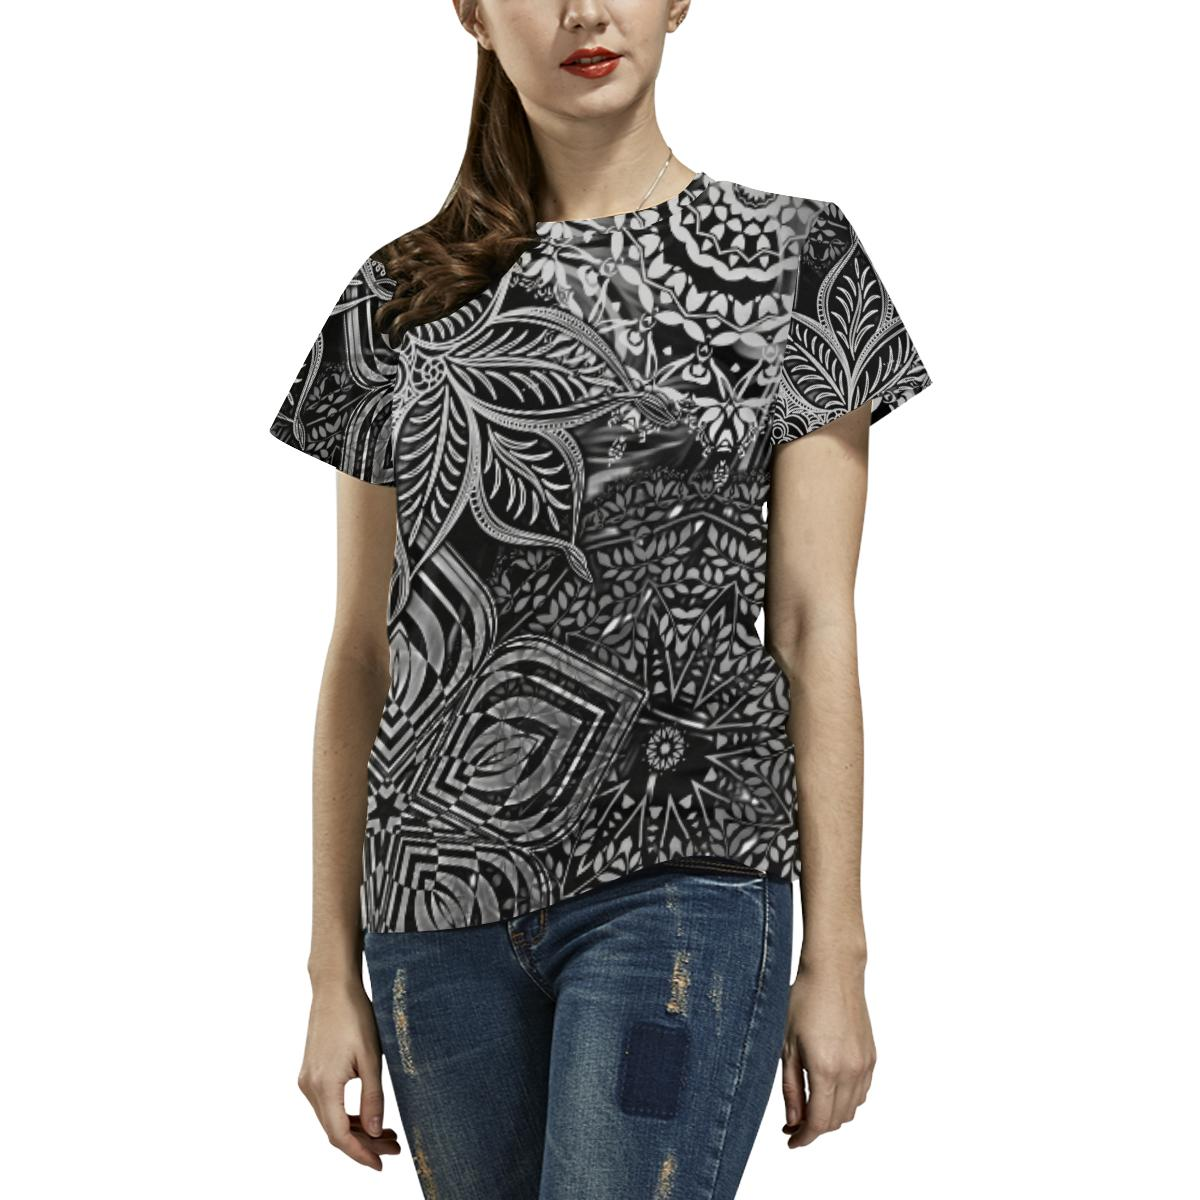 Sacred Geometry Black and White All Over Print T-shirt - Maui Woke